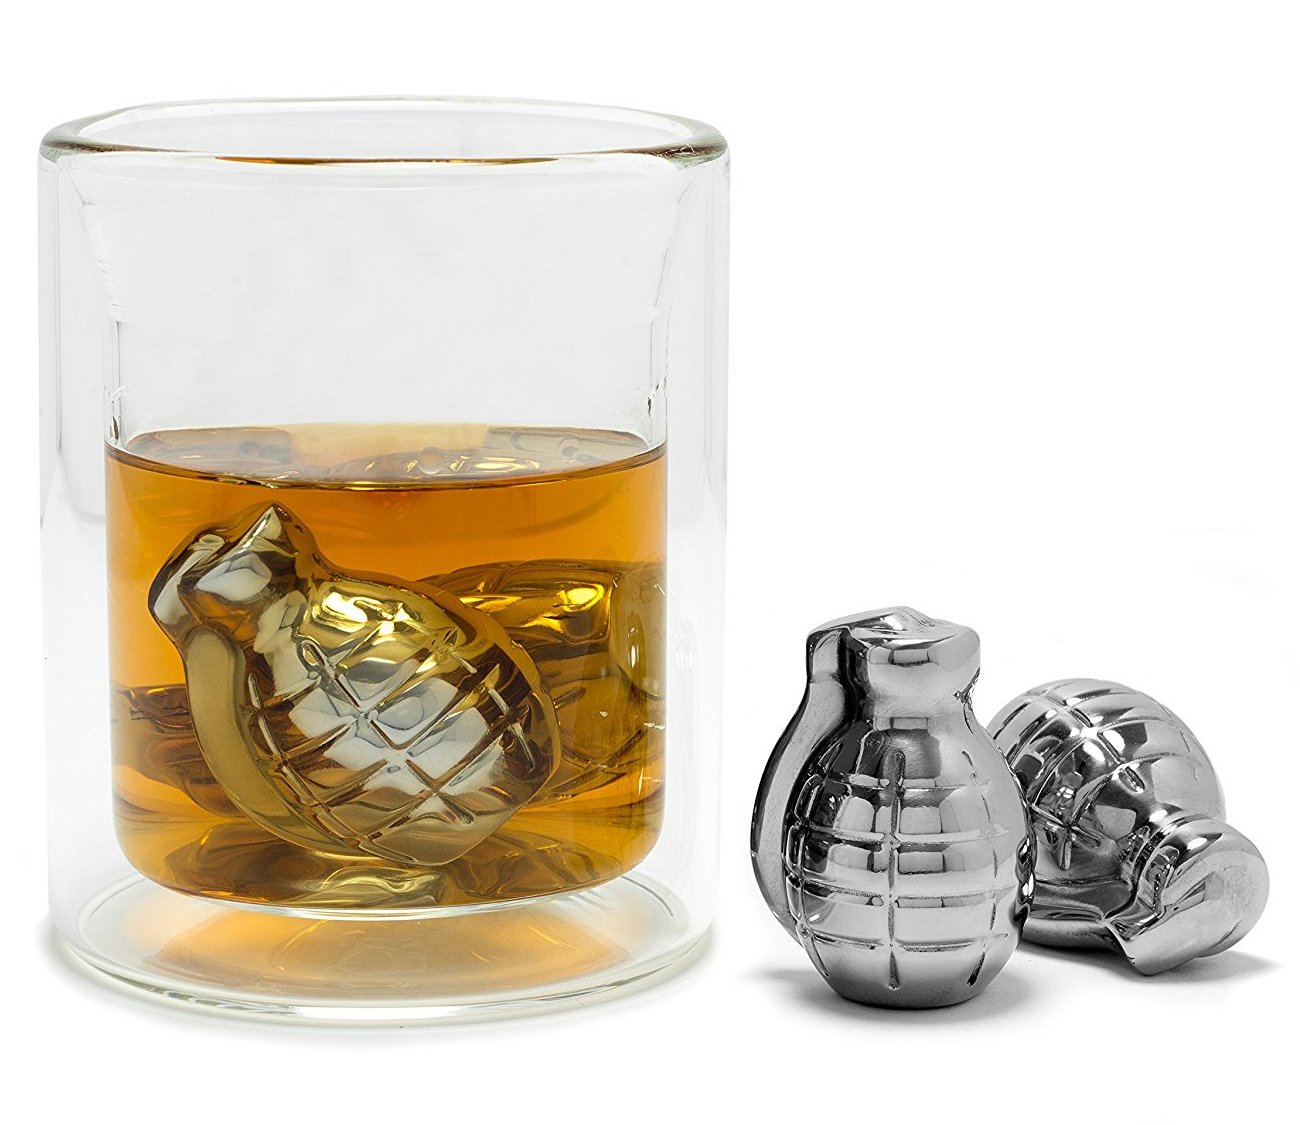 Whiskey Stones Grenade Shaped Stainless Steel with Storage Bag (Set of 4)